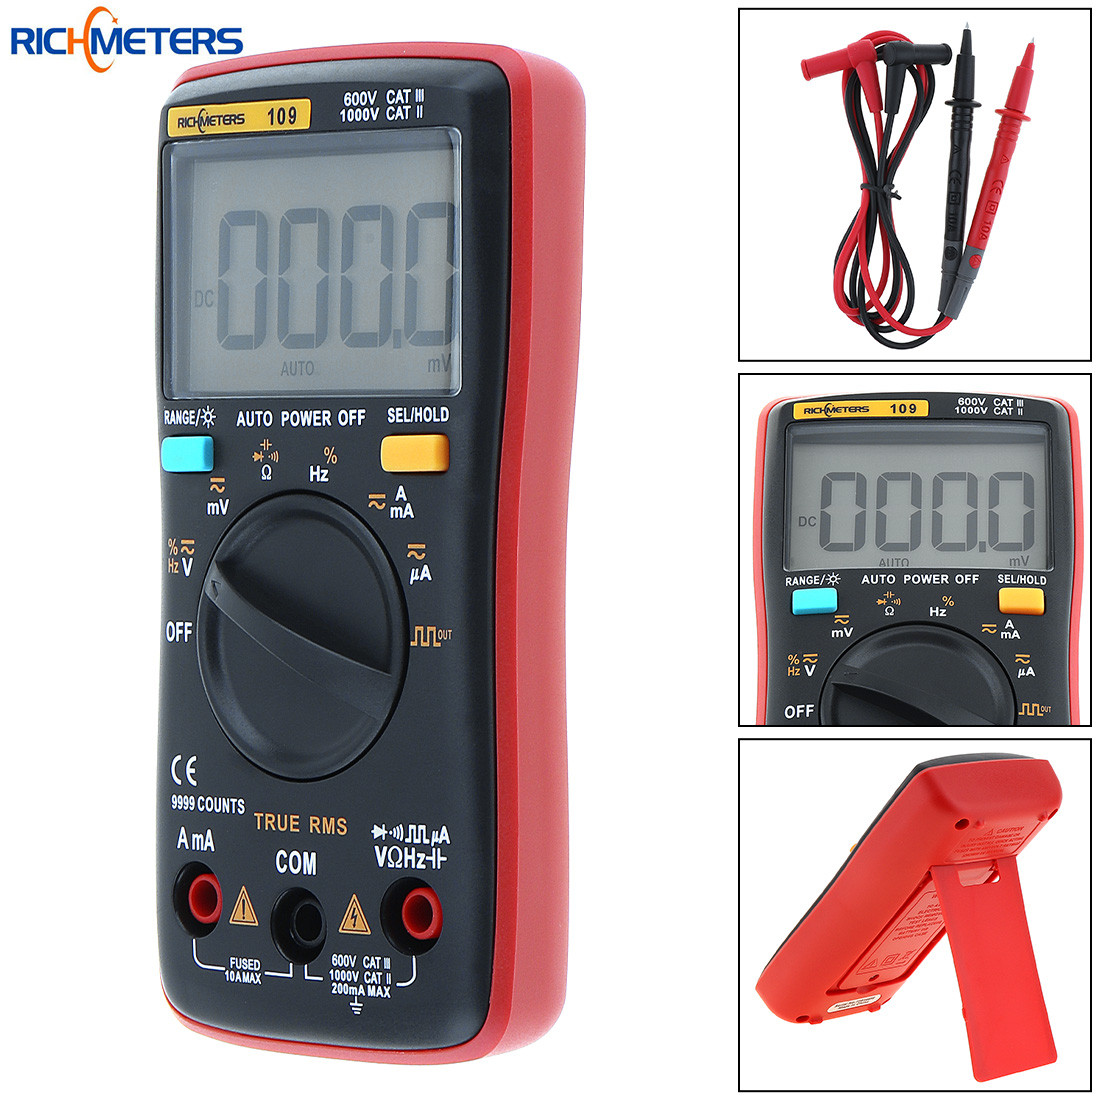 LCD Display 9999 Counts Digital Multimeter AC DC Voltage Current Tester Multi Meter Support Data Hold and Square Wave Output an8206 overload protection mini digital multimeter lcd large screen display wave output ampere voltage ohm tester multimeter